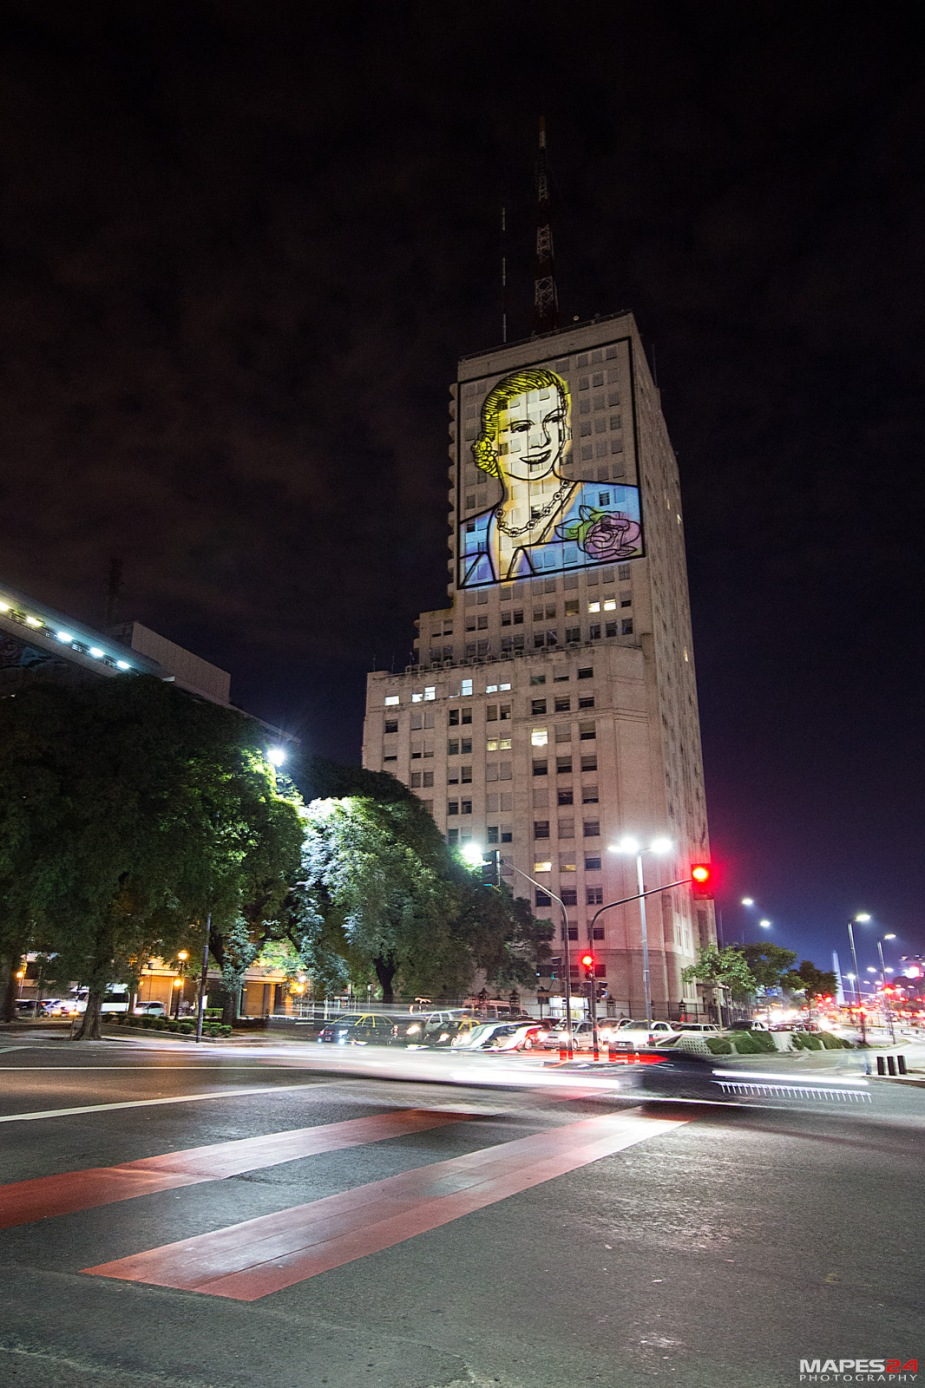 eva peron image on side of building in buenos aires